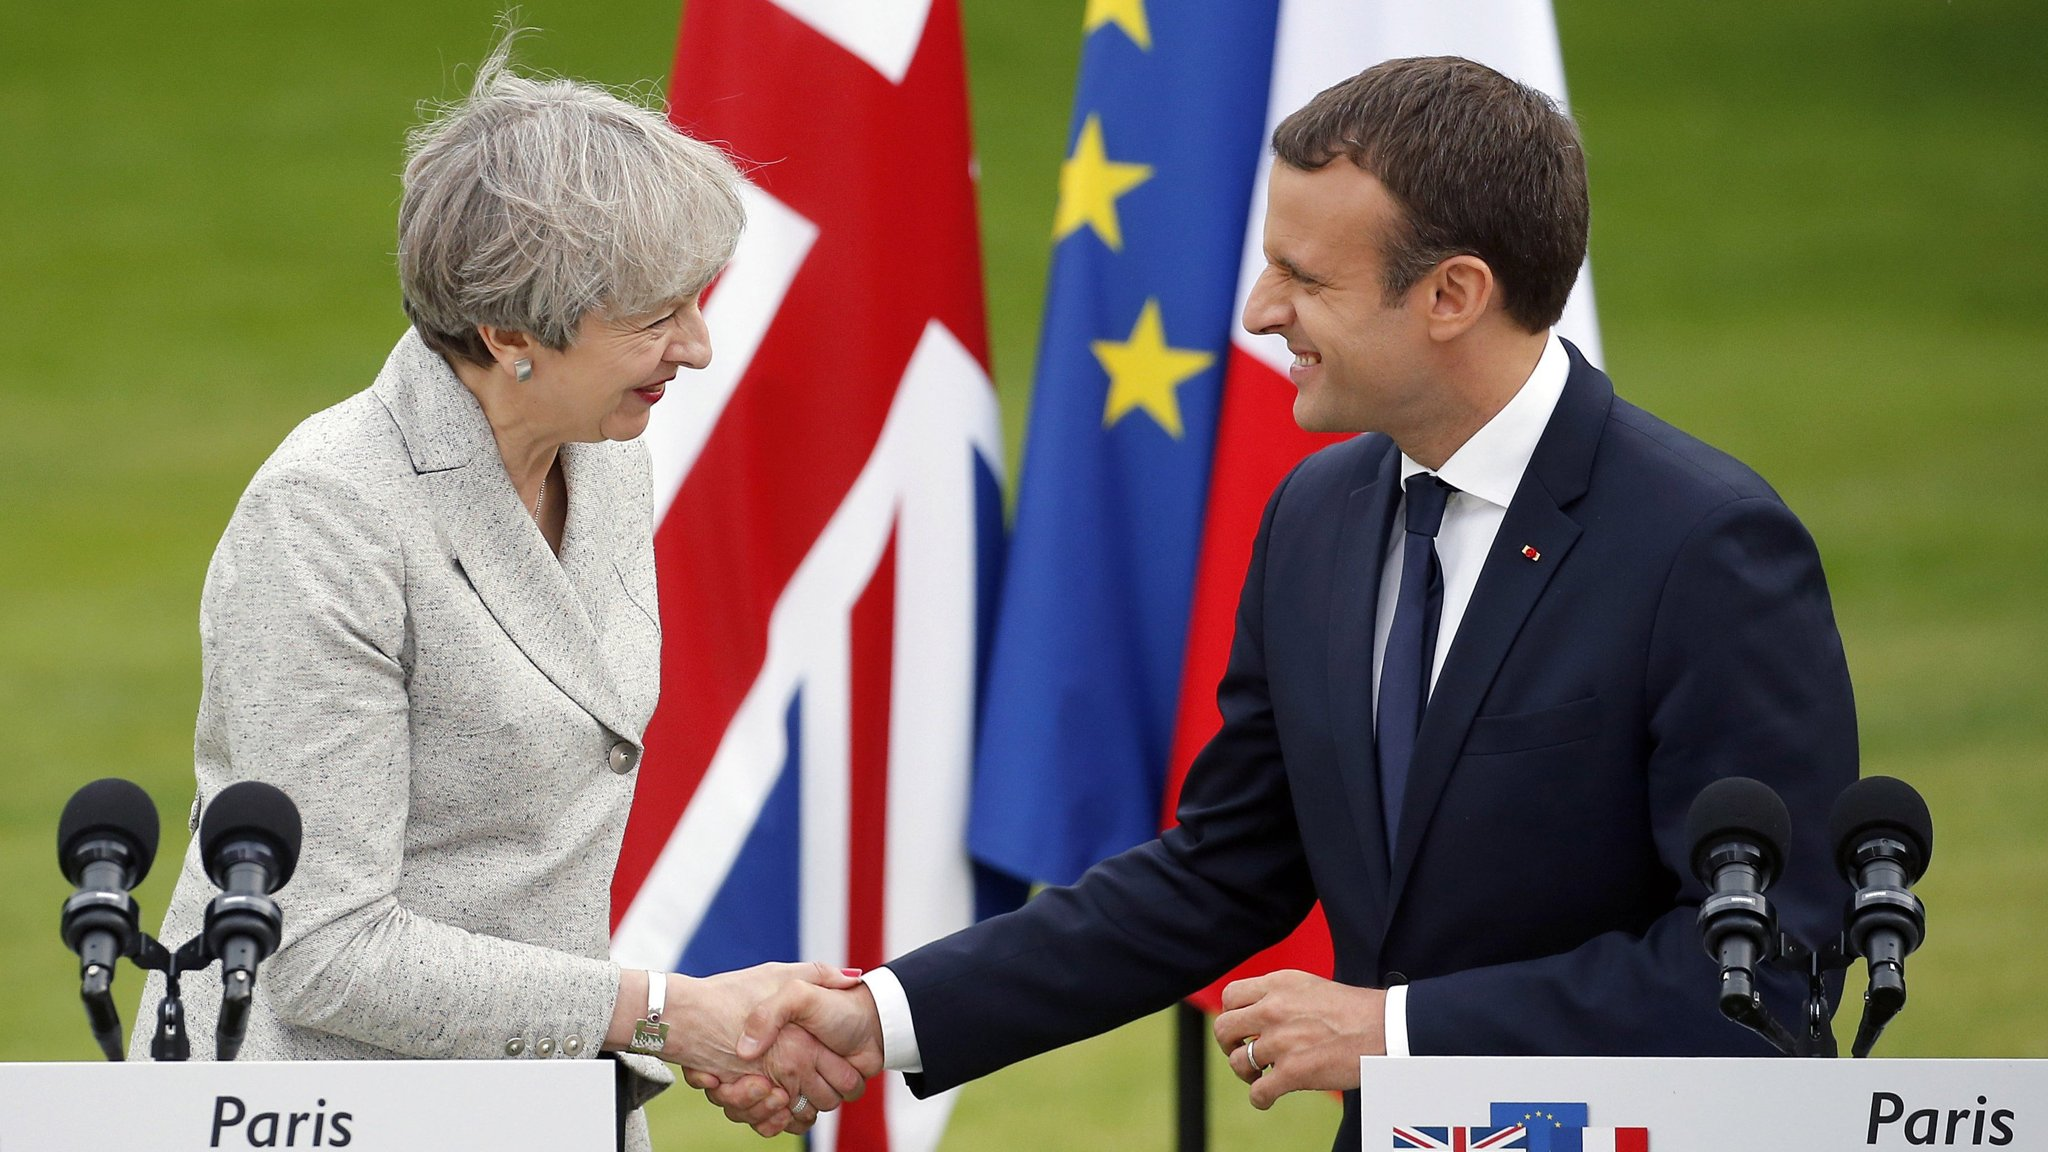 Macron to meet May amid UK Conservative party tensions over Calais